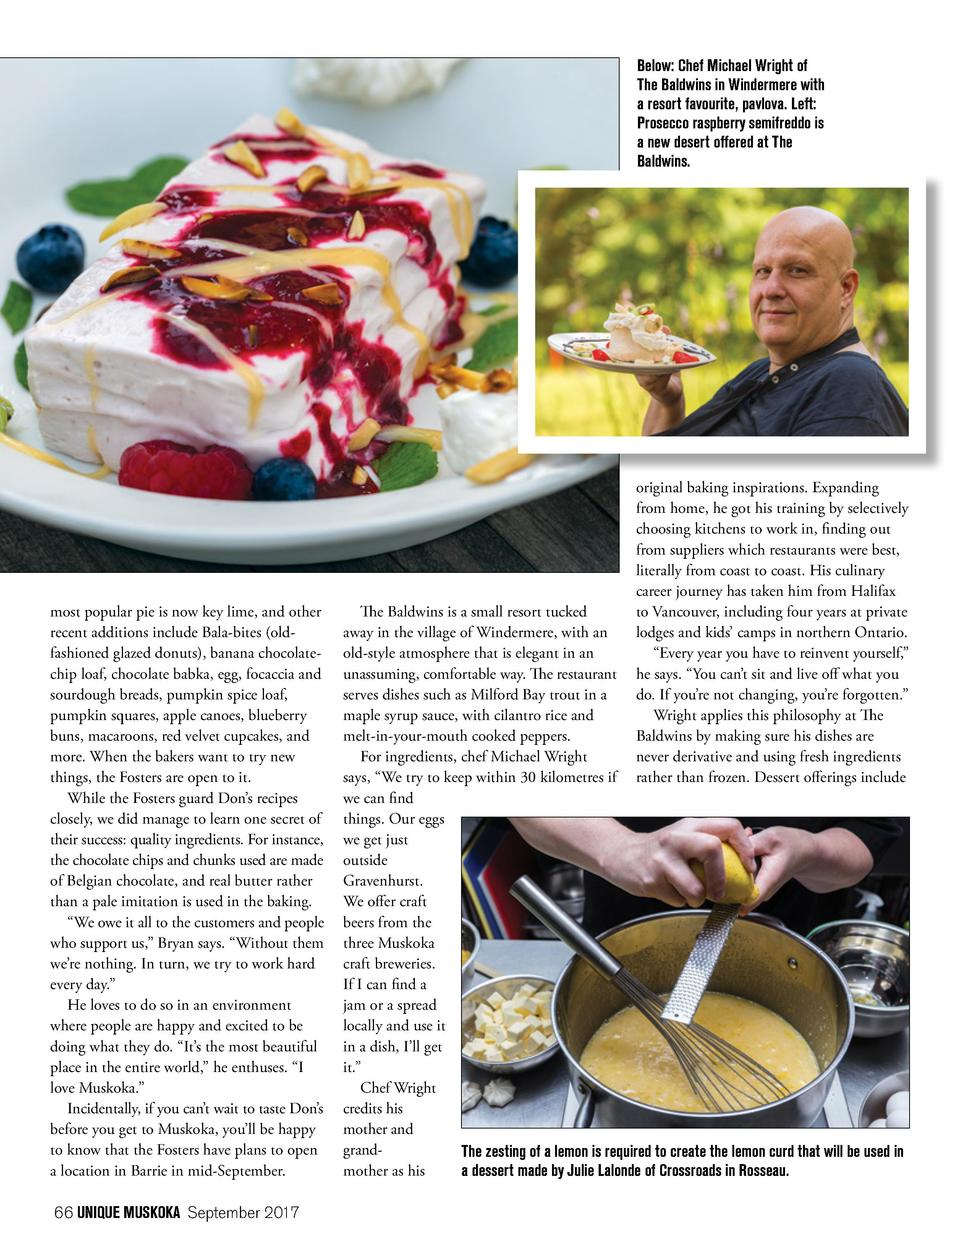 Below  Chef Michael Wright of The Baldwins in Windermere with a resort favourite, pavlova. Left  Prosecco raspberry semifr...